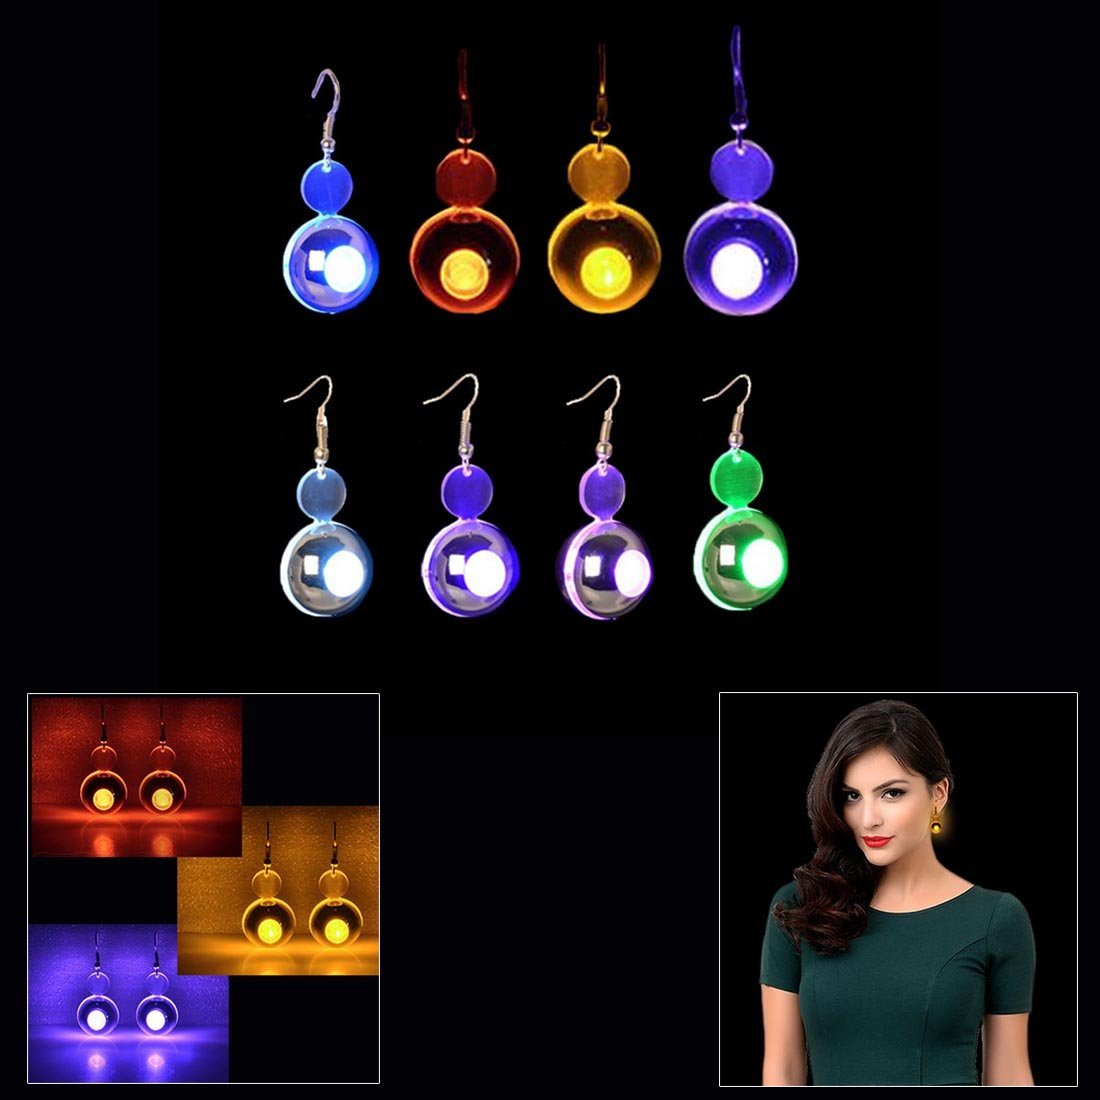 Dazzling Toys New GLOWING Big Round Shaped LED Earrings 4 pairs/ 4 colors